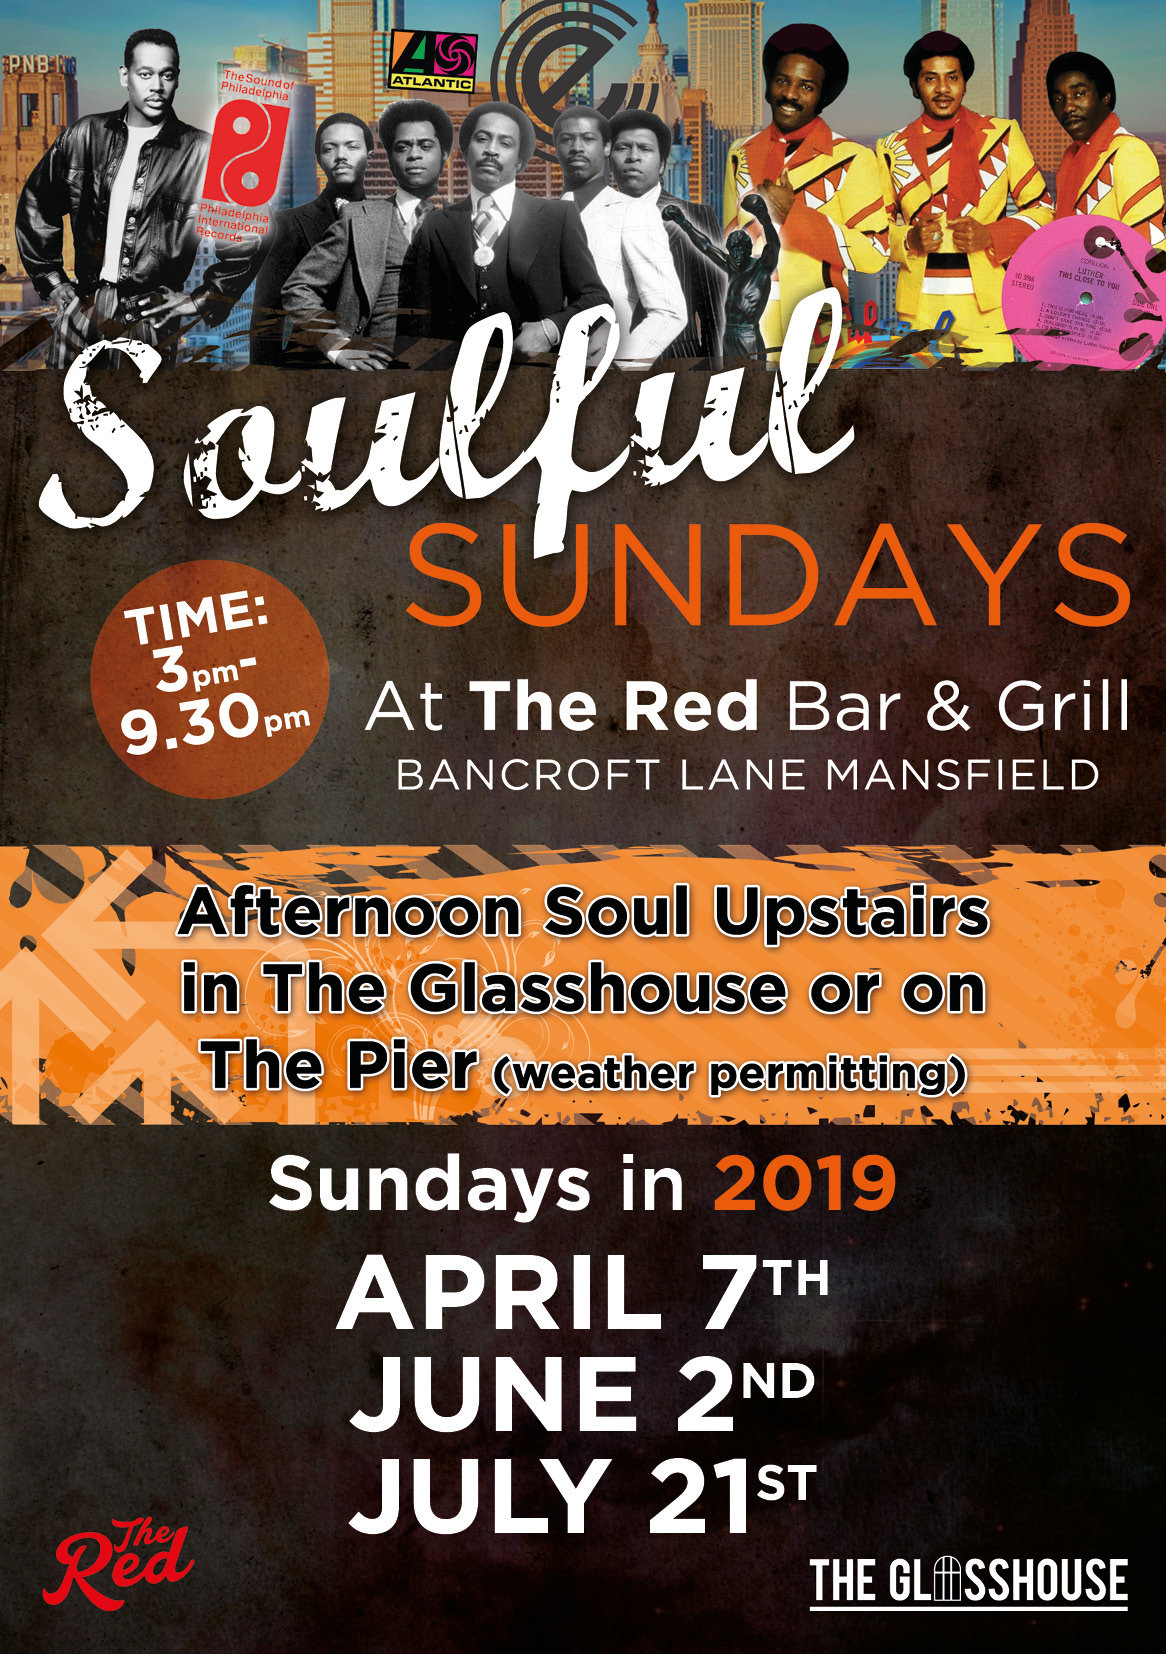 The Red Soulful Sundays flyer